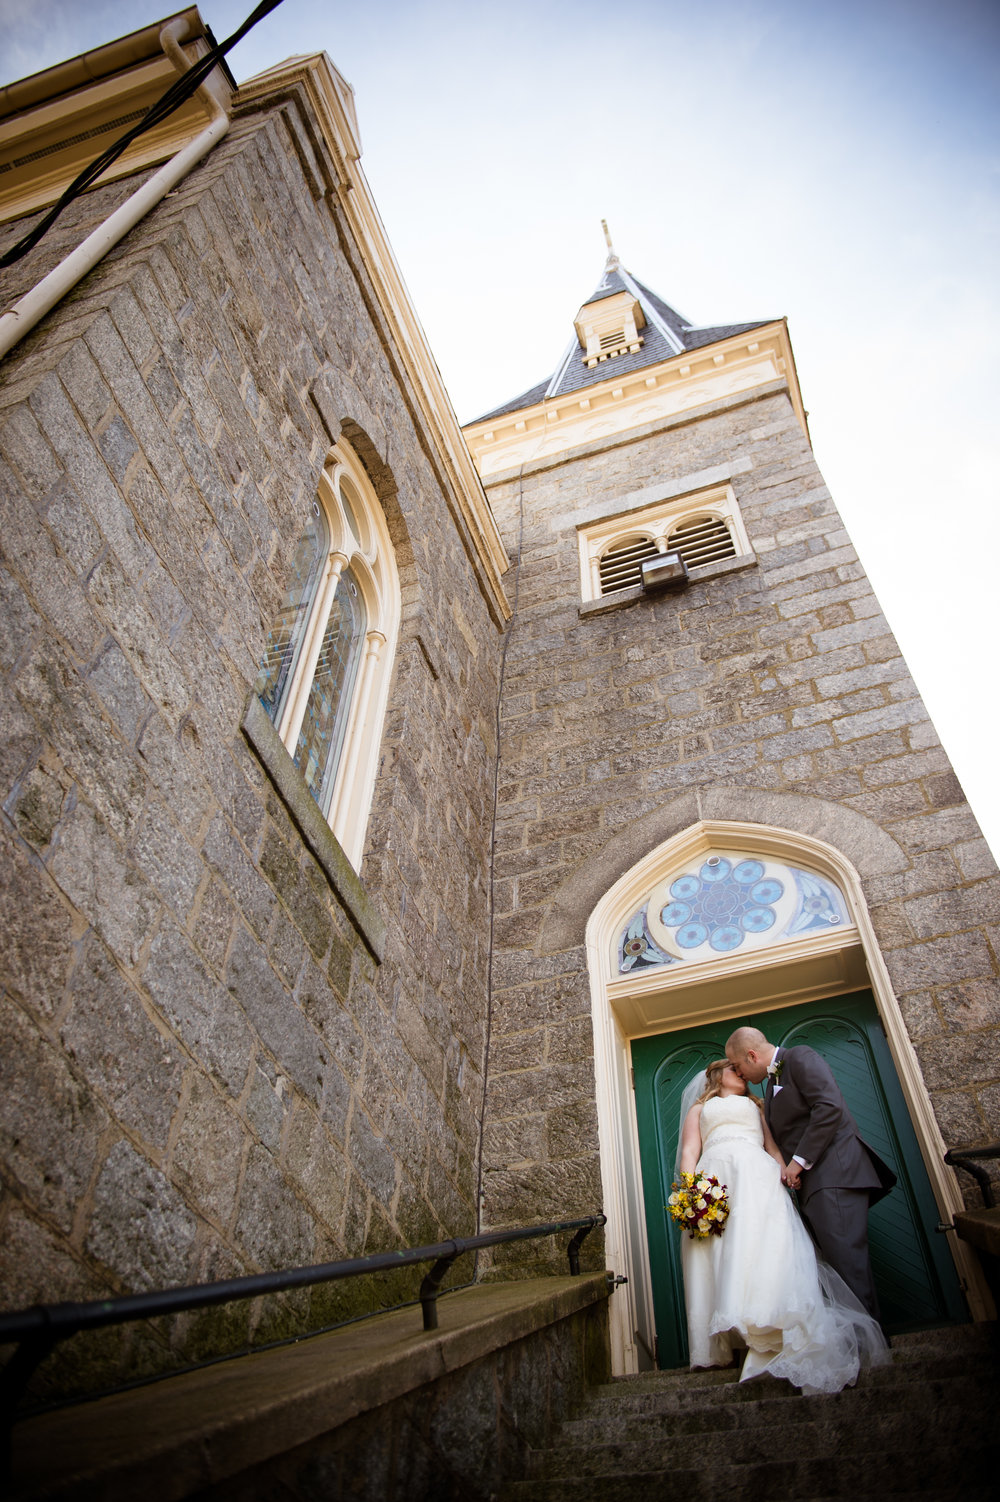 Lock and Co. Traci JD Medlock Washington DC Wedding Portrait Music Photography Videography Lifestyle Photographers Virginia Engagement Session castle chapel church.jpg